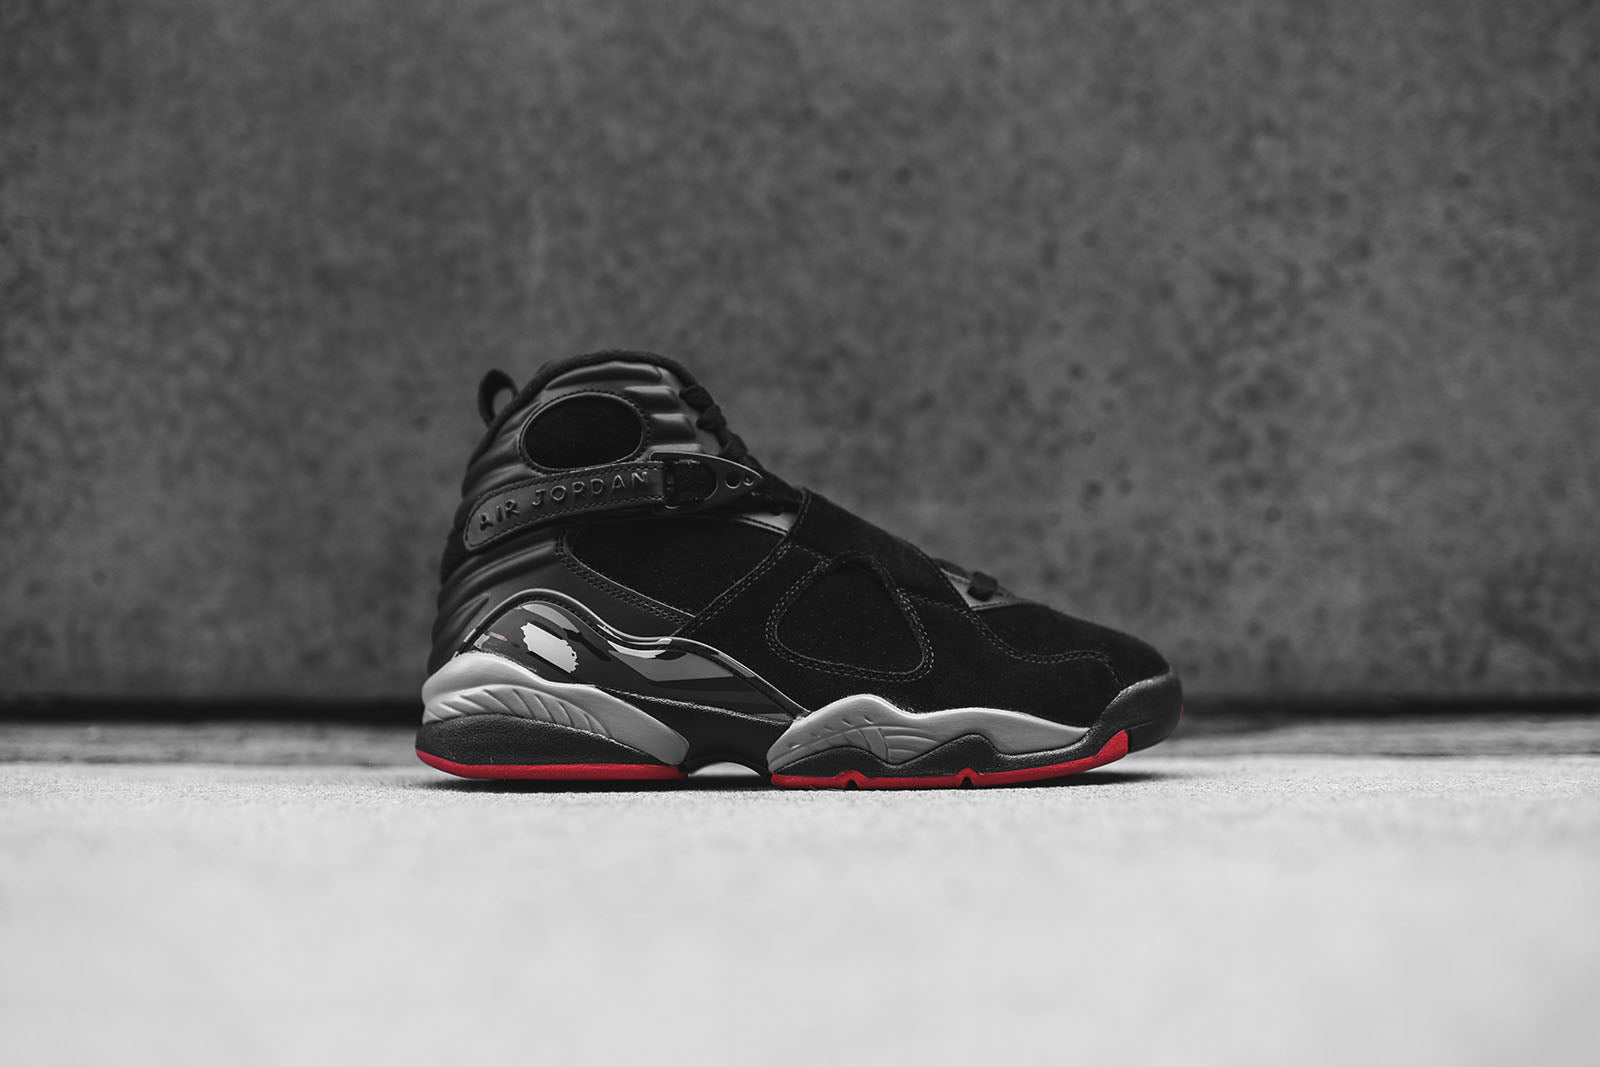 check out bd6b9 2675a ... Nike Air Jordan 8 Retro - Black Red ...